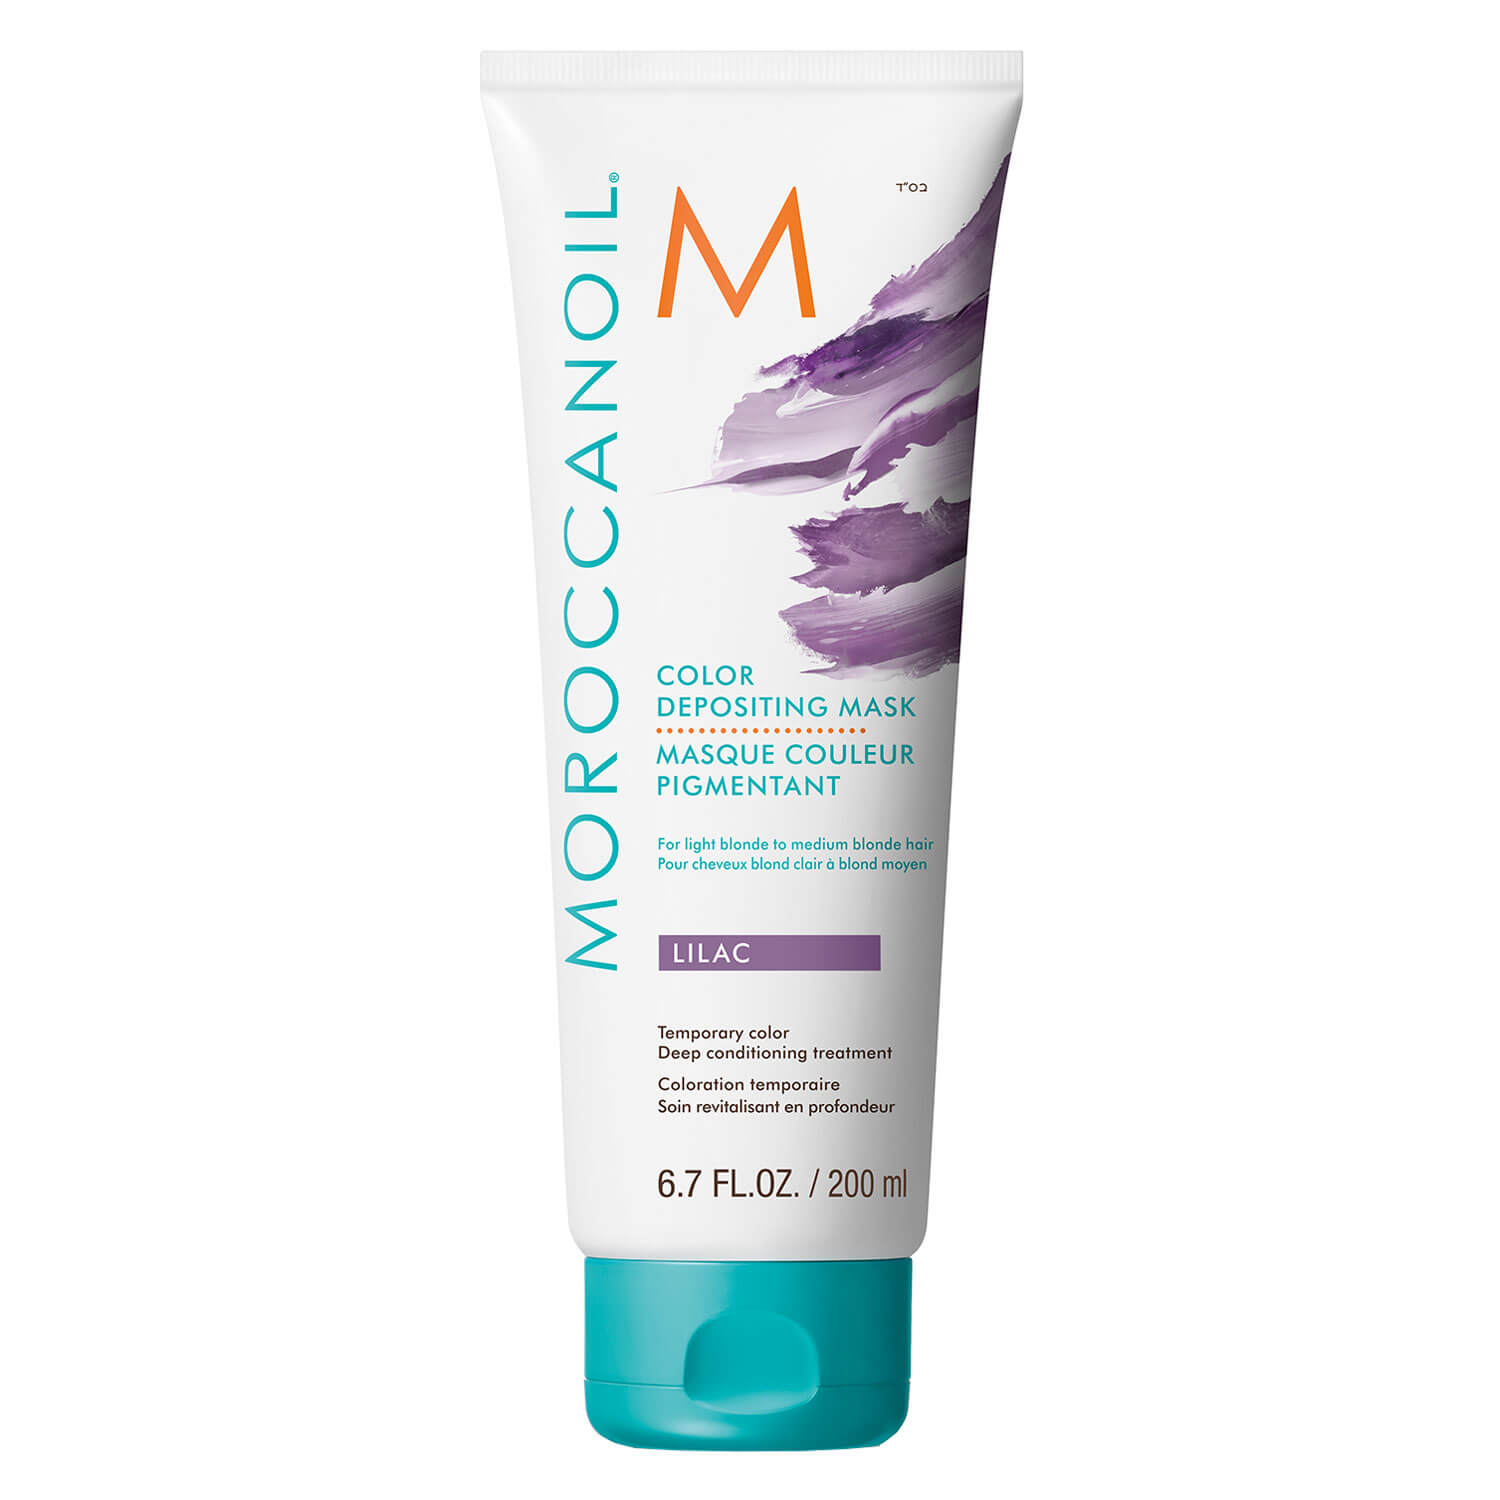 Moroccanoil - Color Depositing Mask Lilac